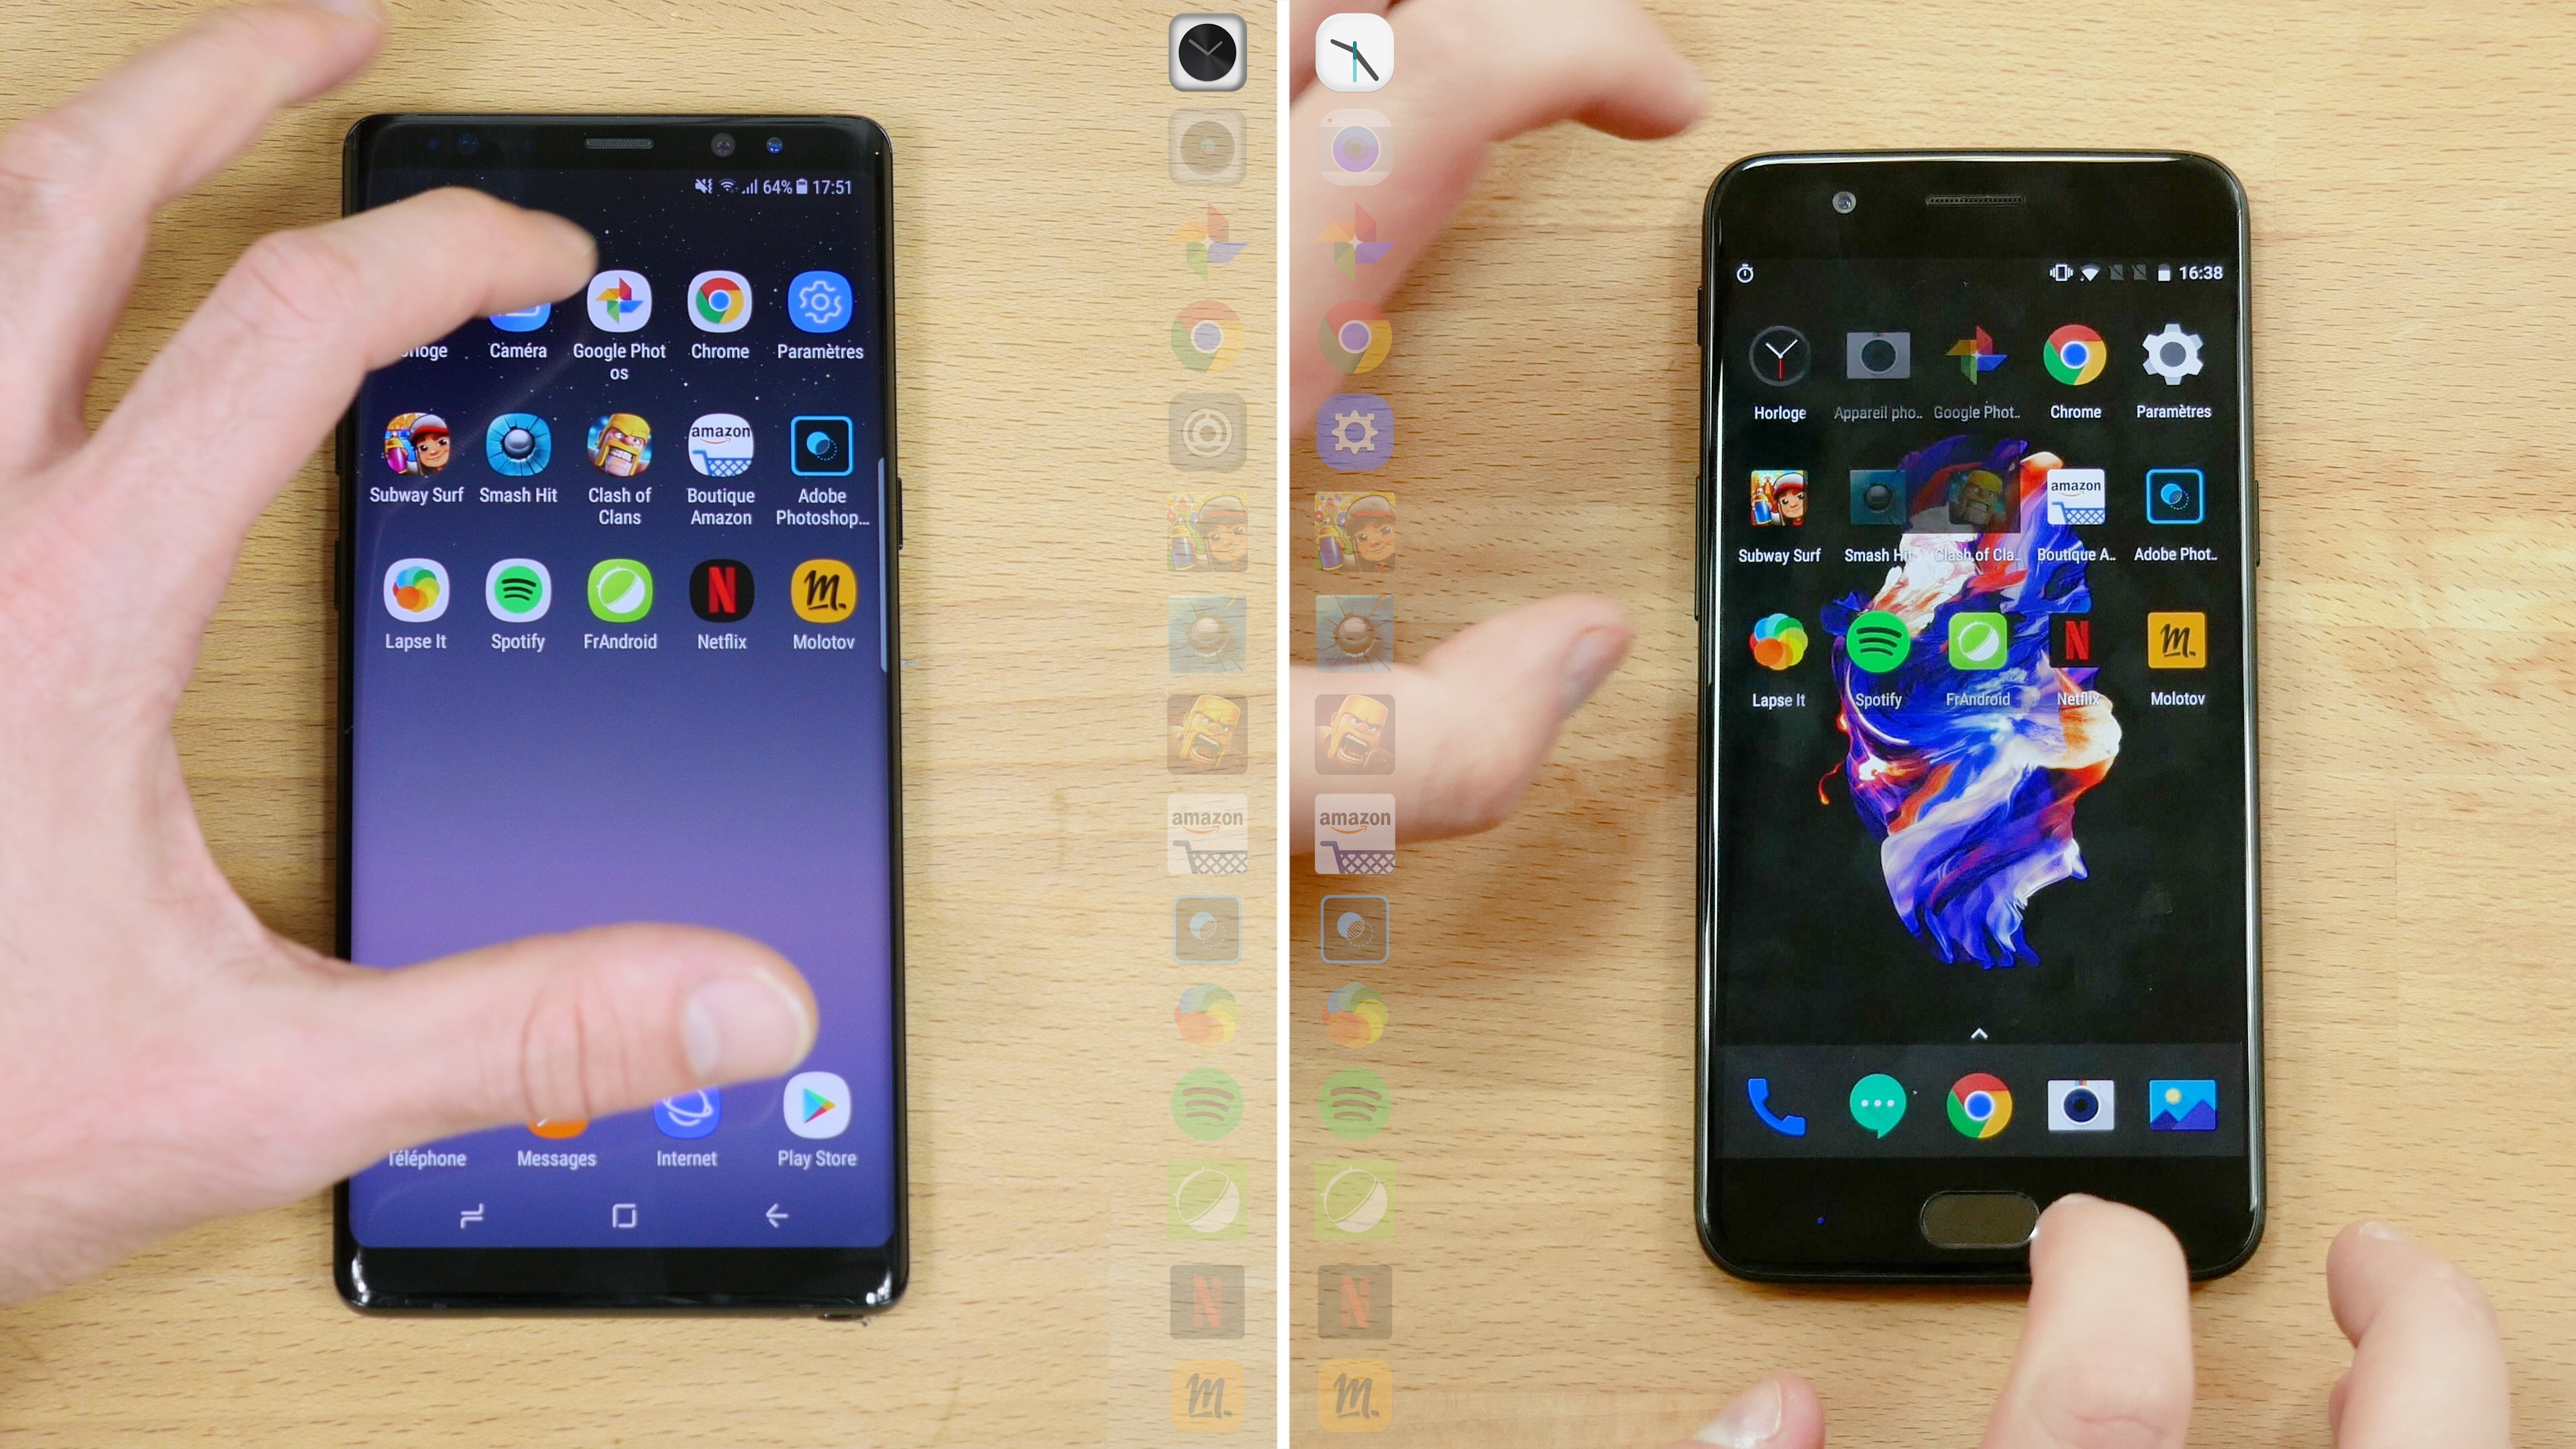 Speedtest Samsung Galaxy Note 8 vs OnePlus 5 : qui est le plus rapide ?